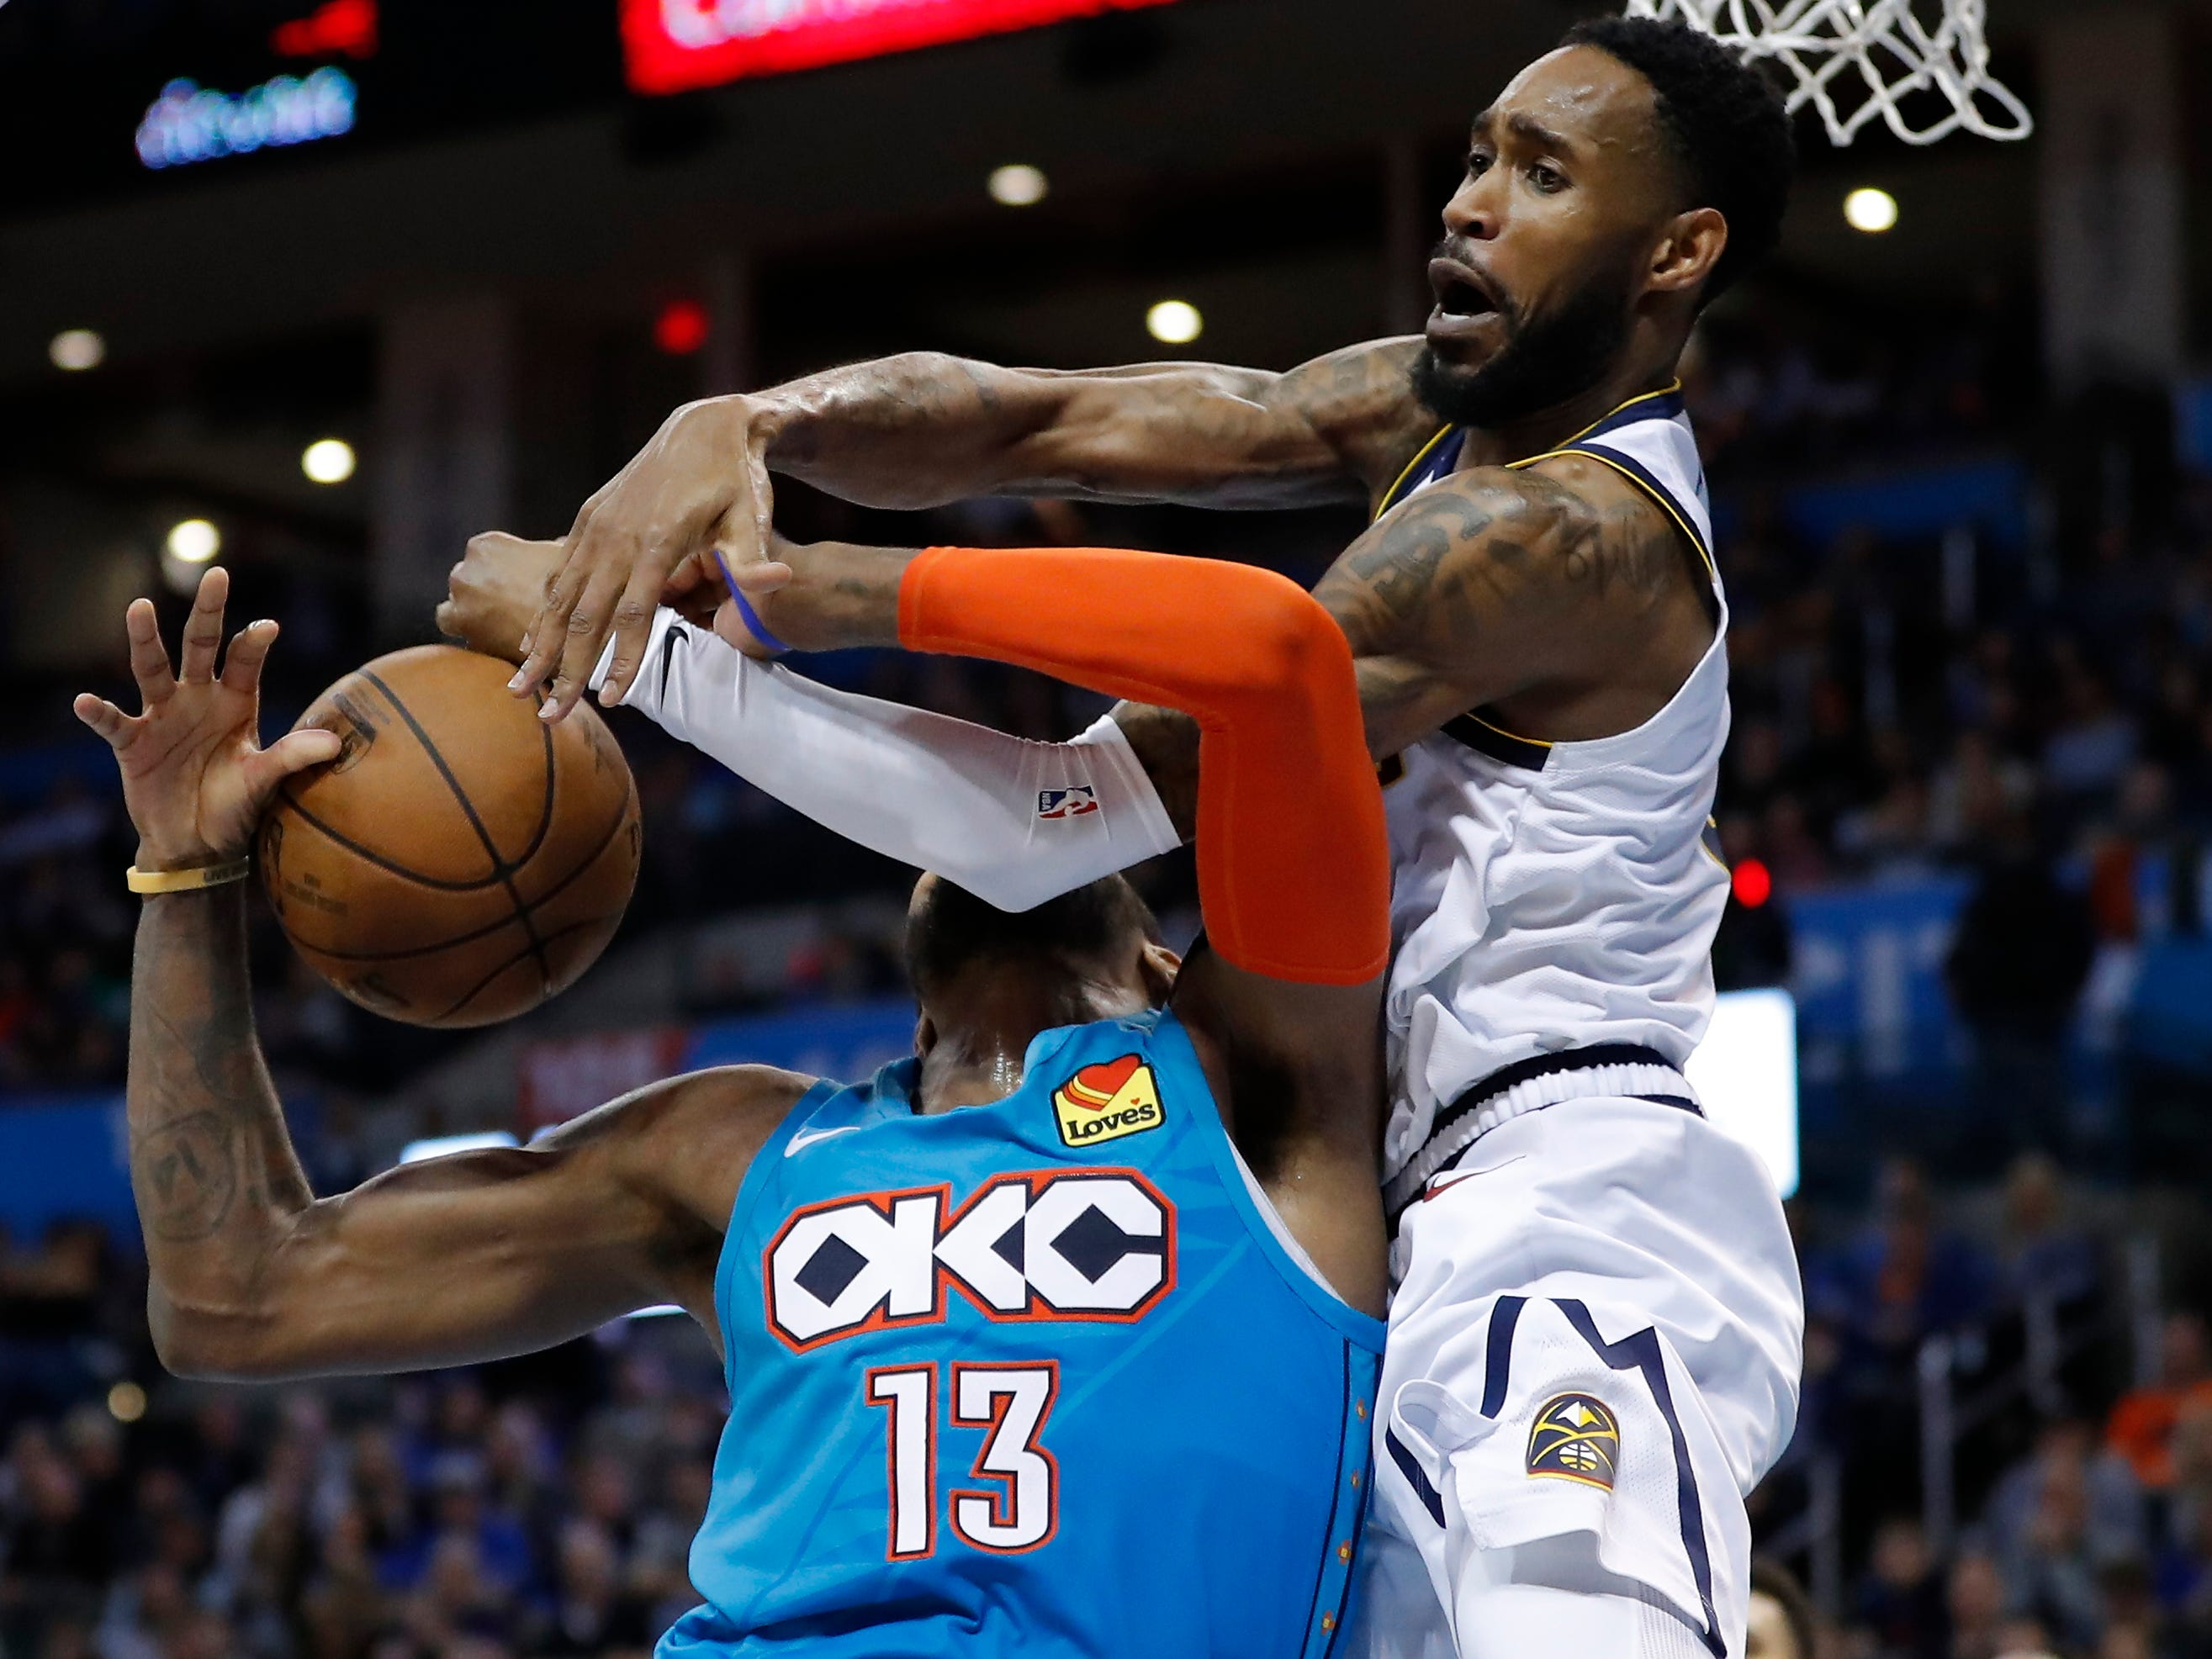 March 29: Nuggets defender Will Barton (5) fouls Thunder forward Paul George (13) on a second-half drive tho the basket in Oklahoma City.